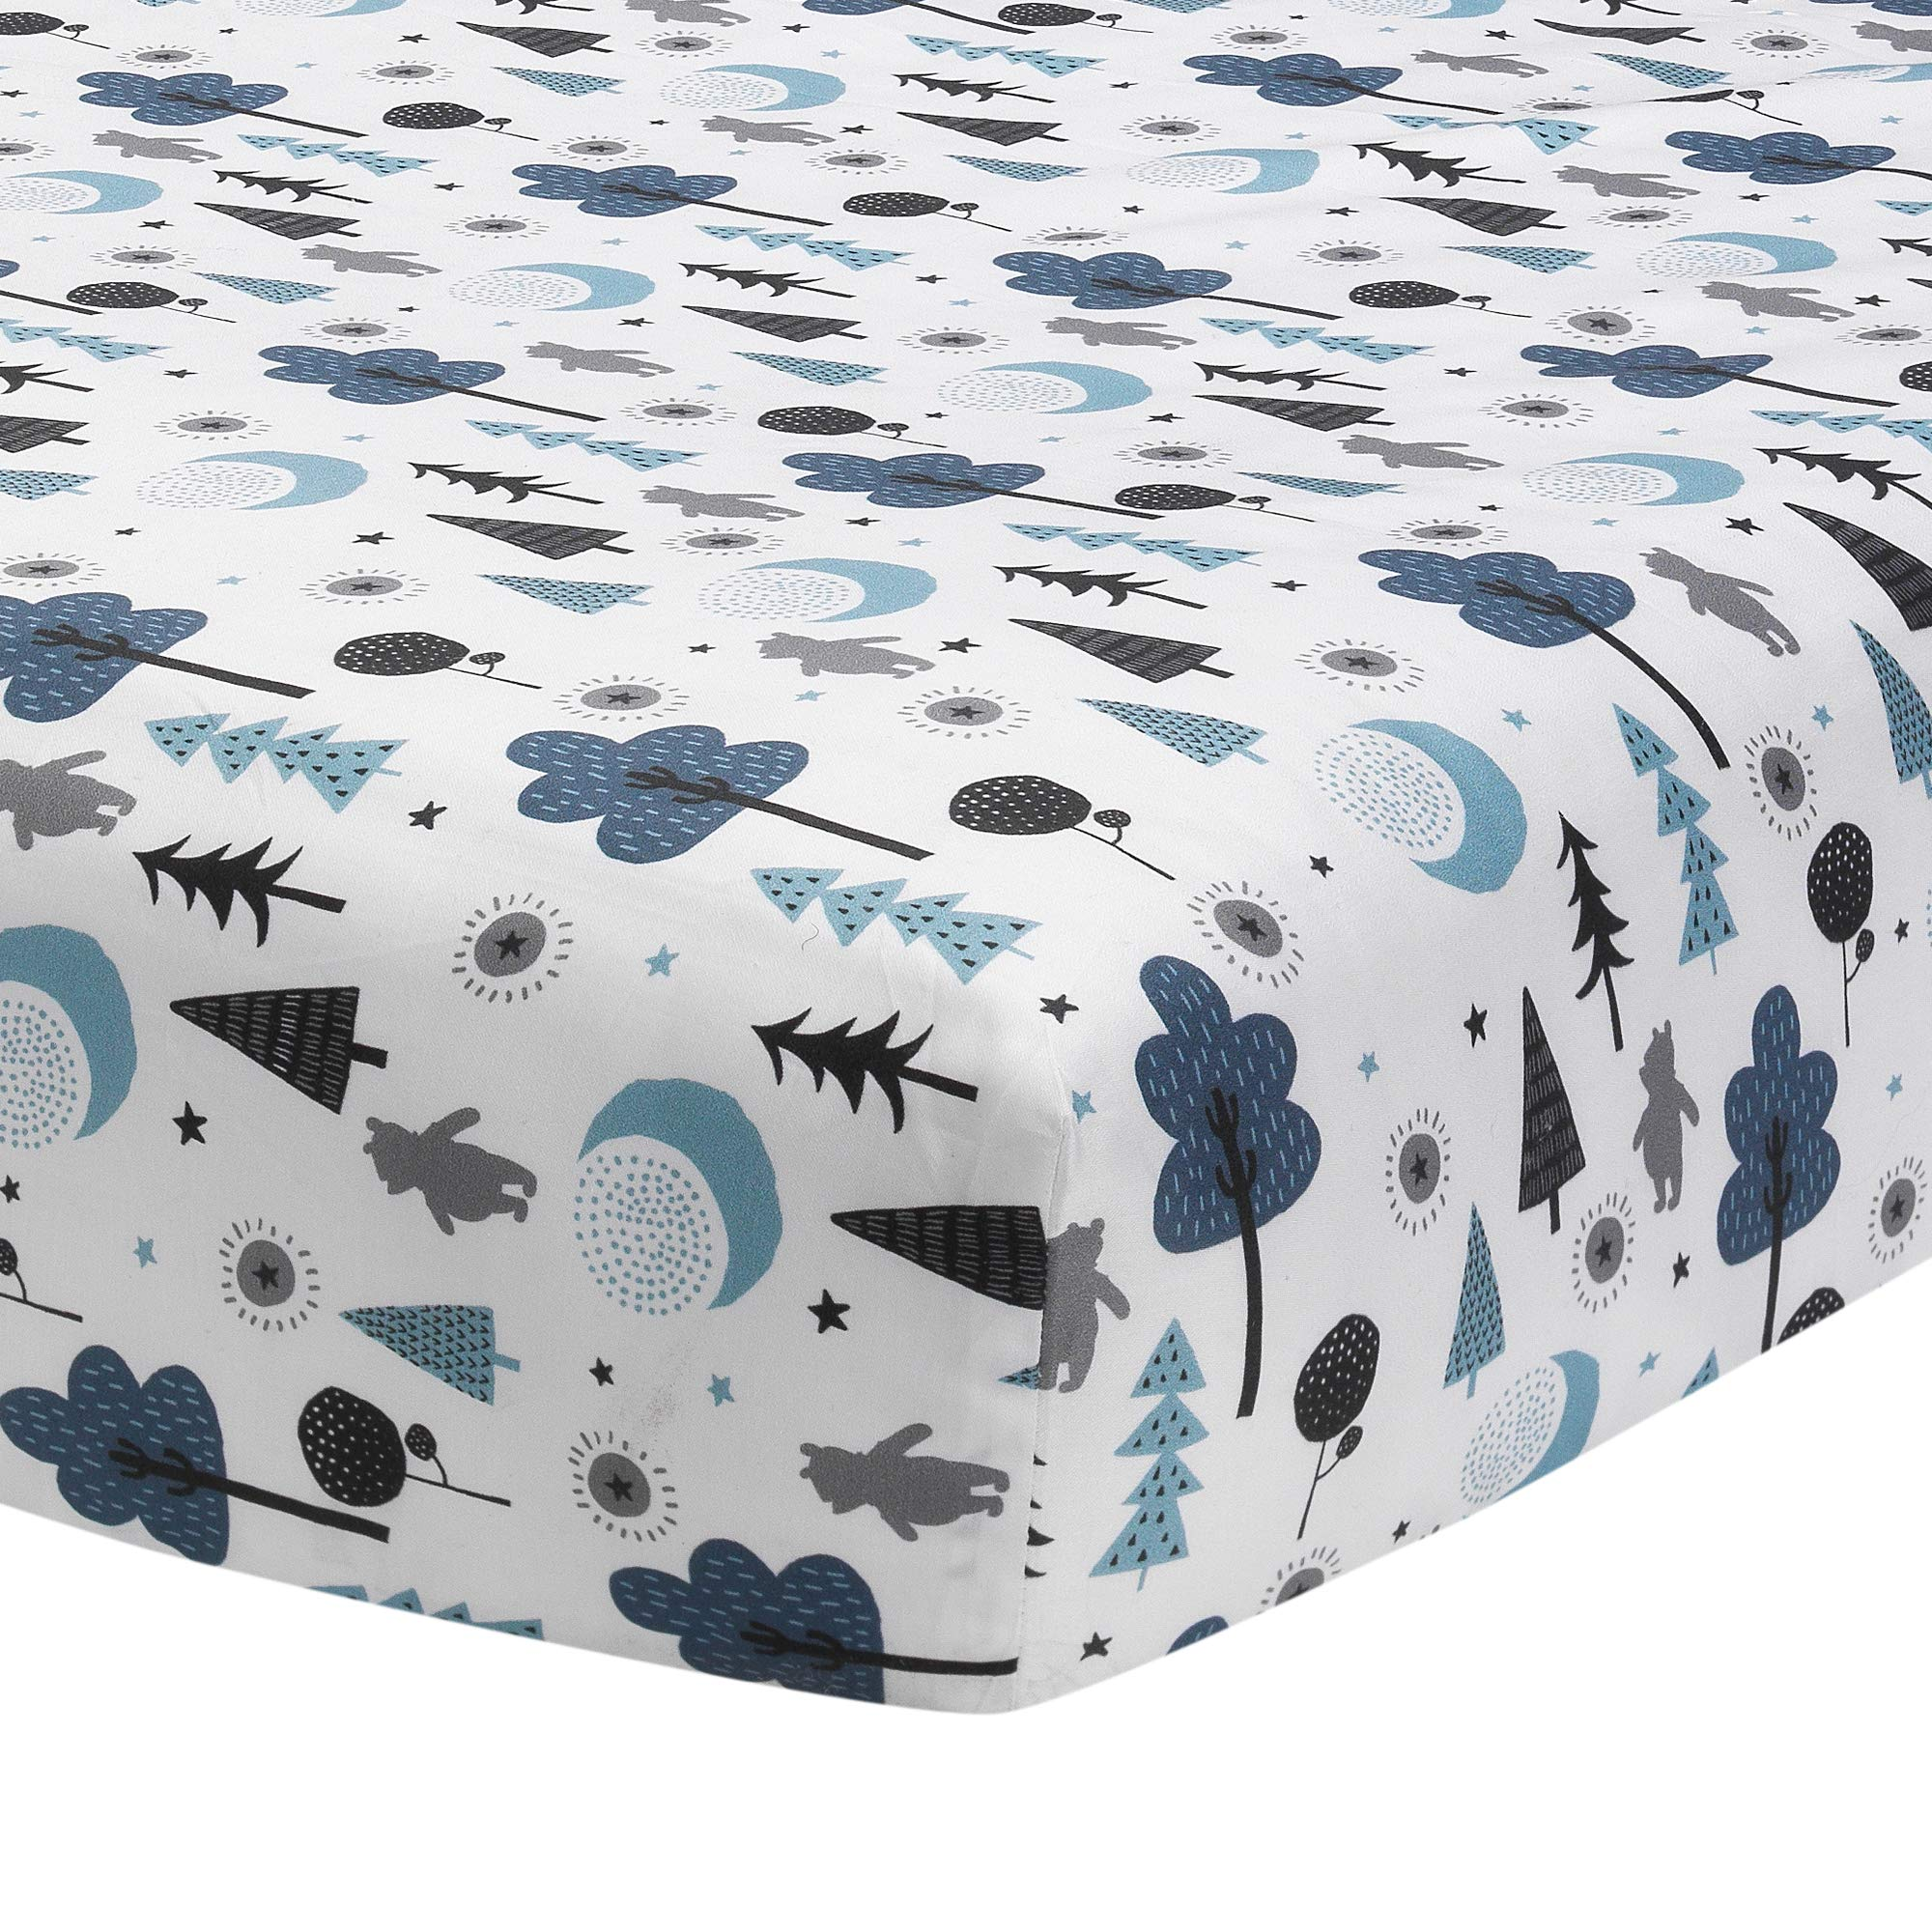 Lambs & Ivy Forever Pooh 3Piece Baby Crib Bedding Set, Blue by Lambs & Ivy (Image #5)